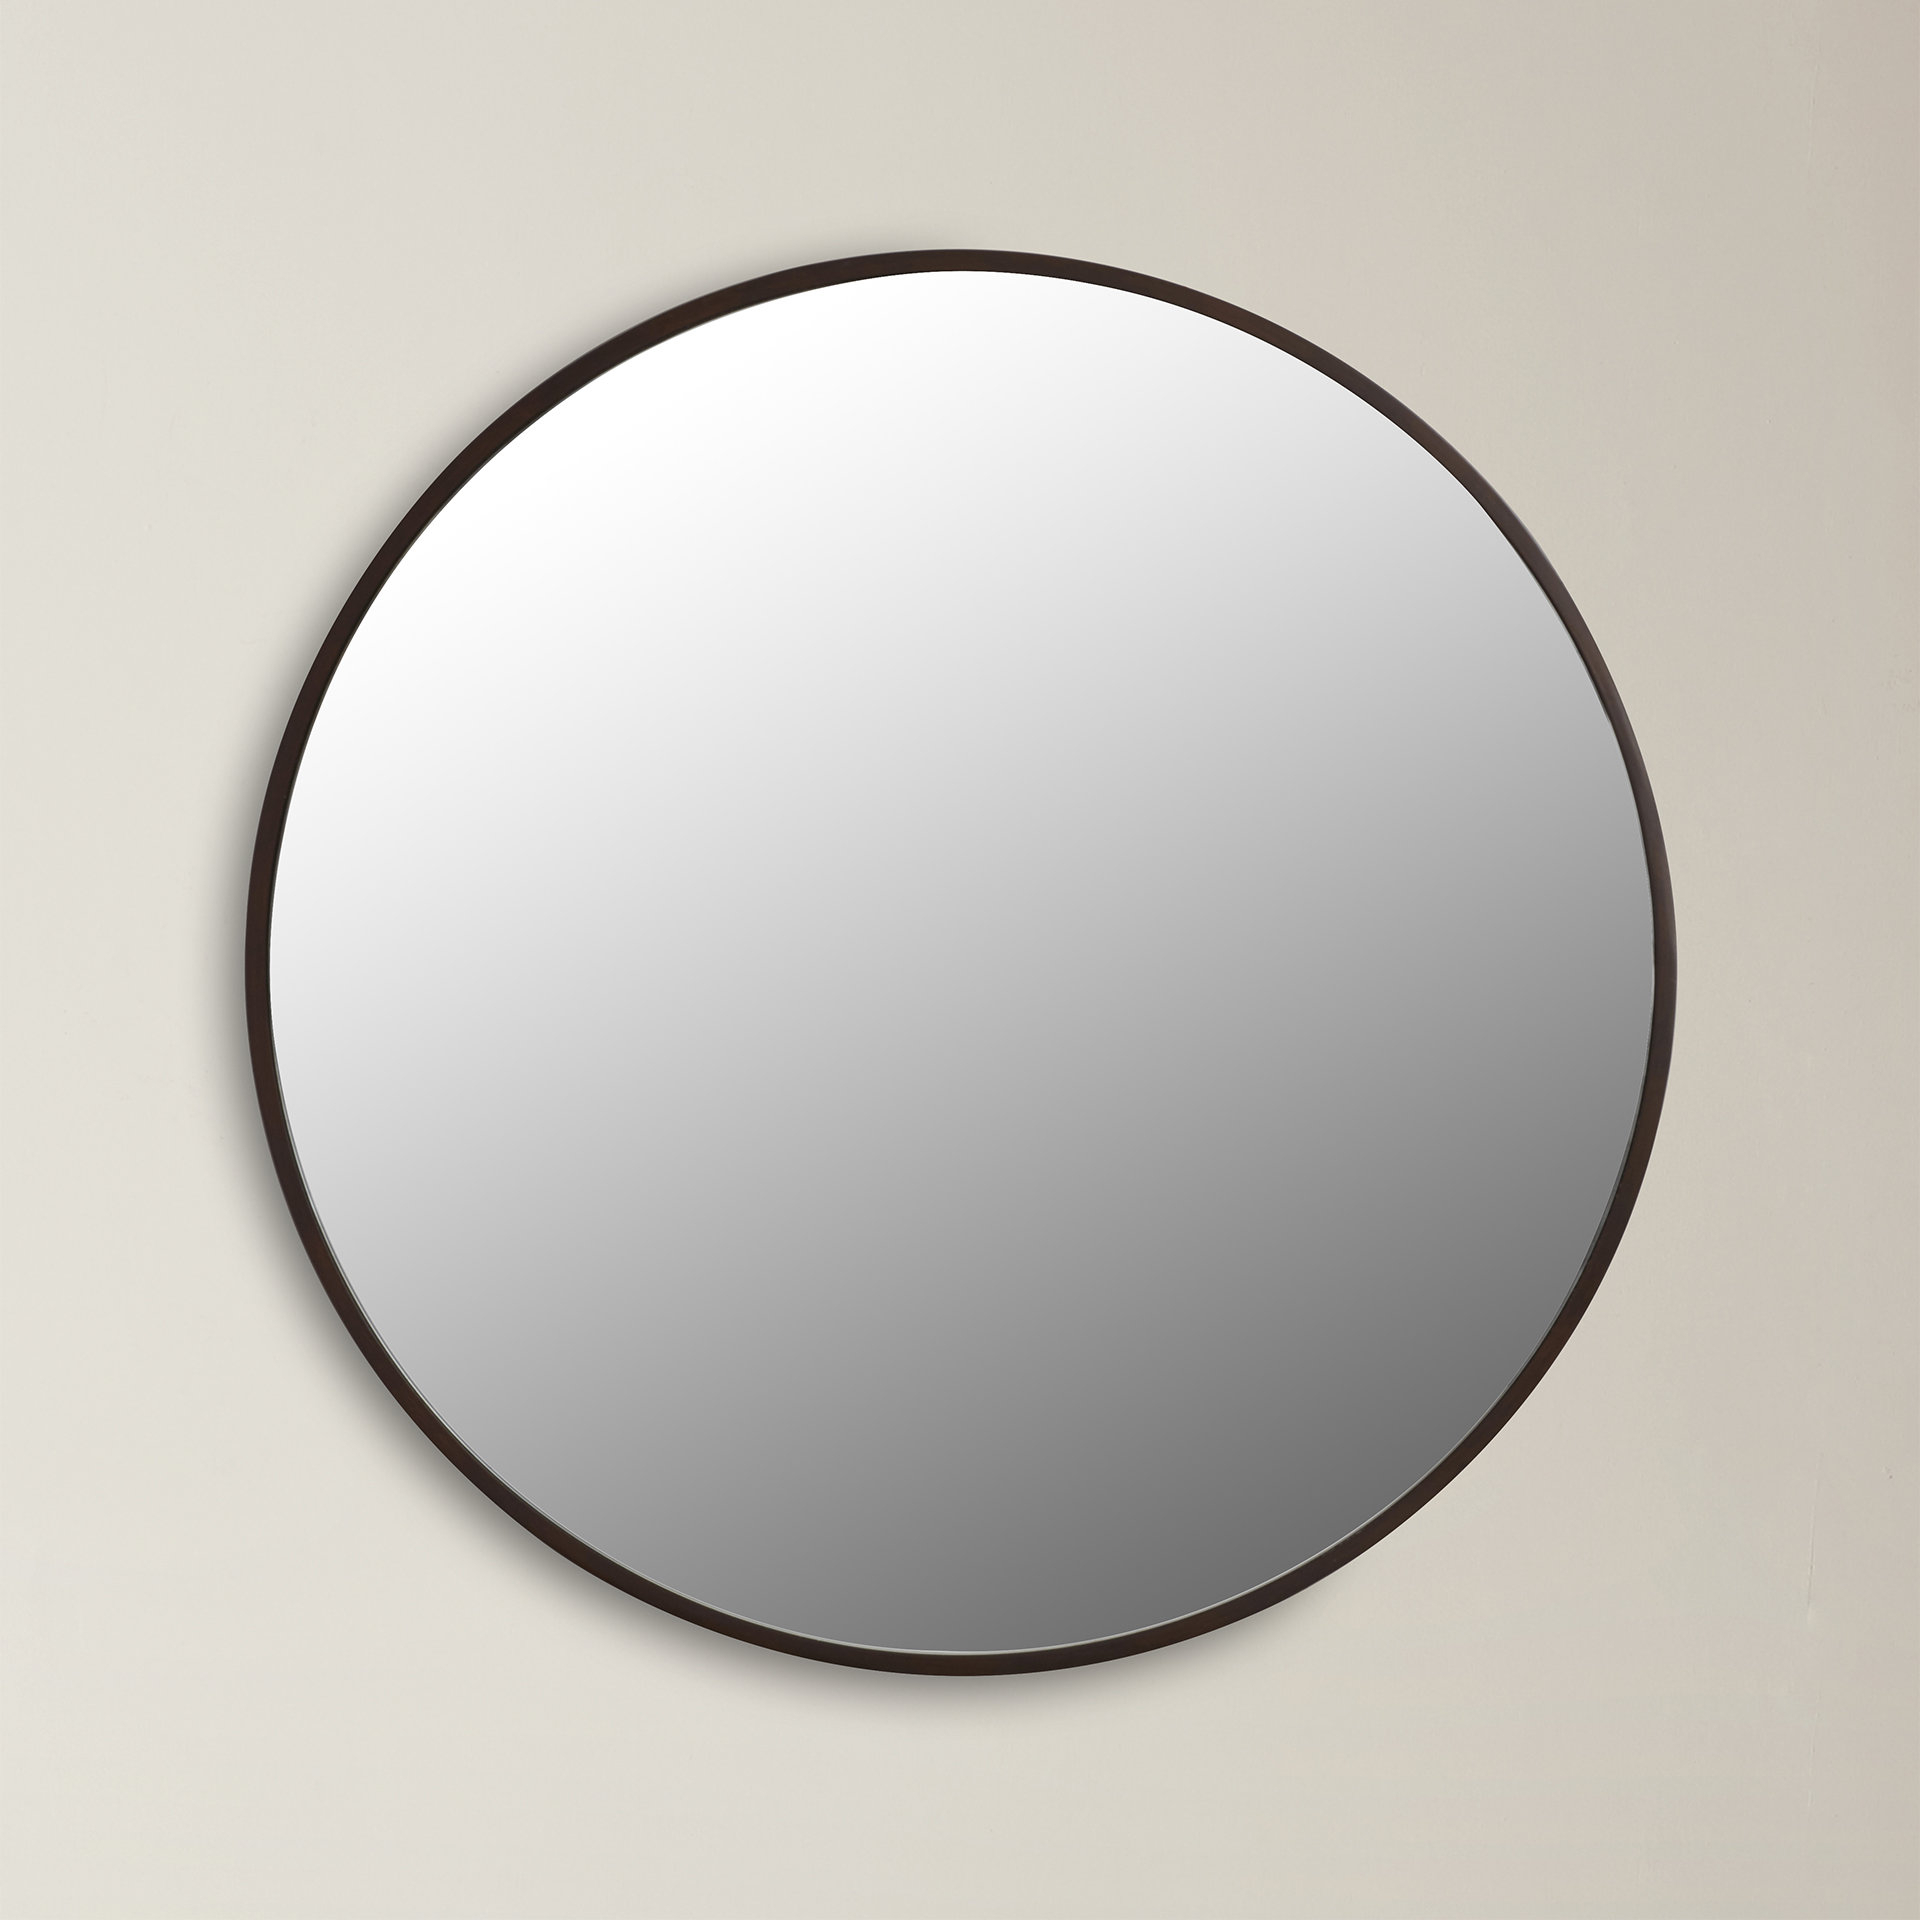 Widely Used Levan Modern & Contemporary Accent Mirrors With Levan Modern & Contemporary Accent Mirror (View 20 of 20)